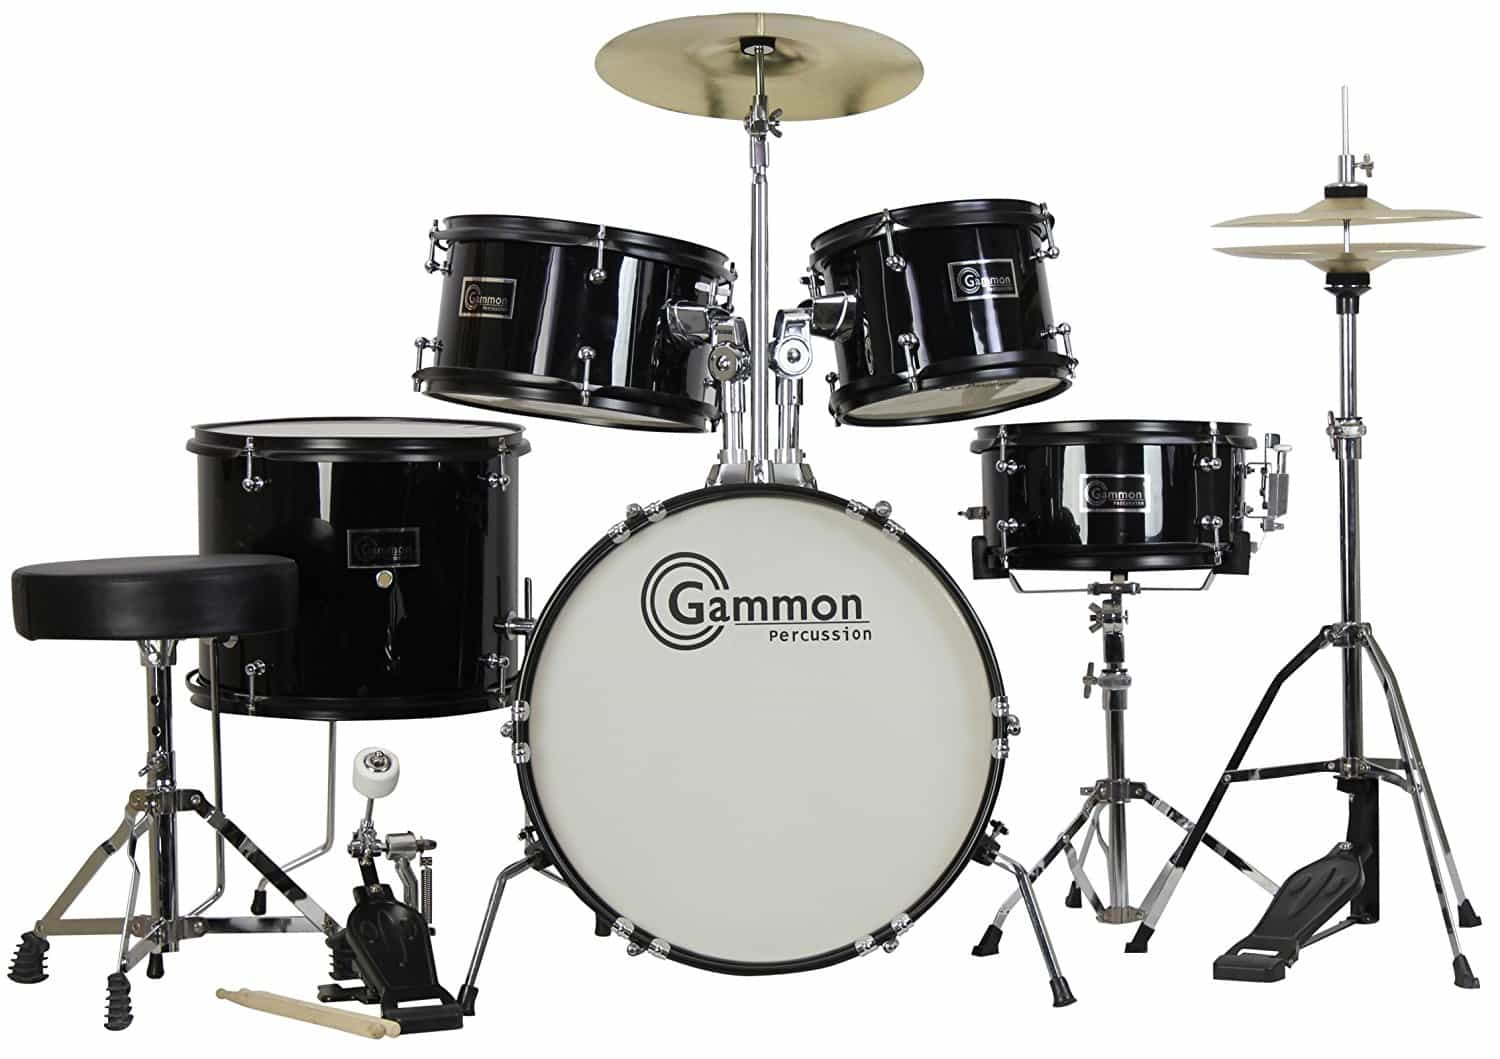 Welcome to BasicDrummer.com - Your Drumming Resource!